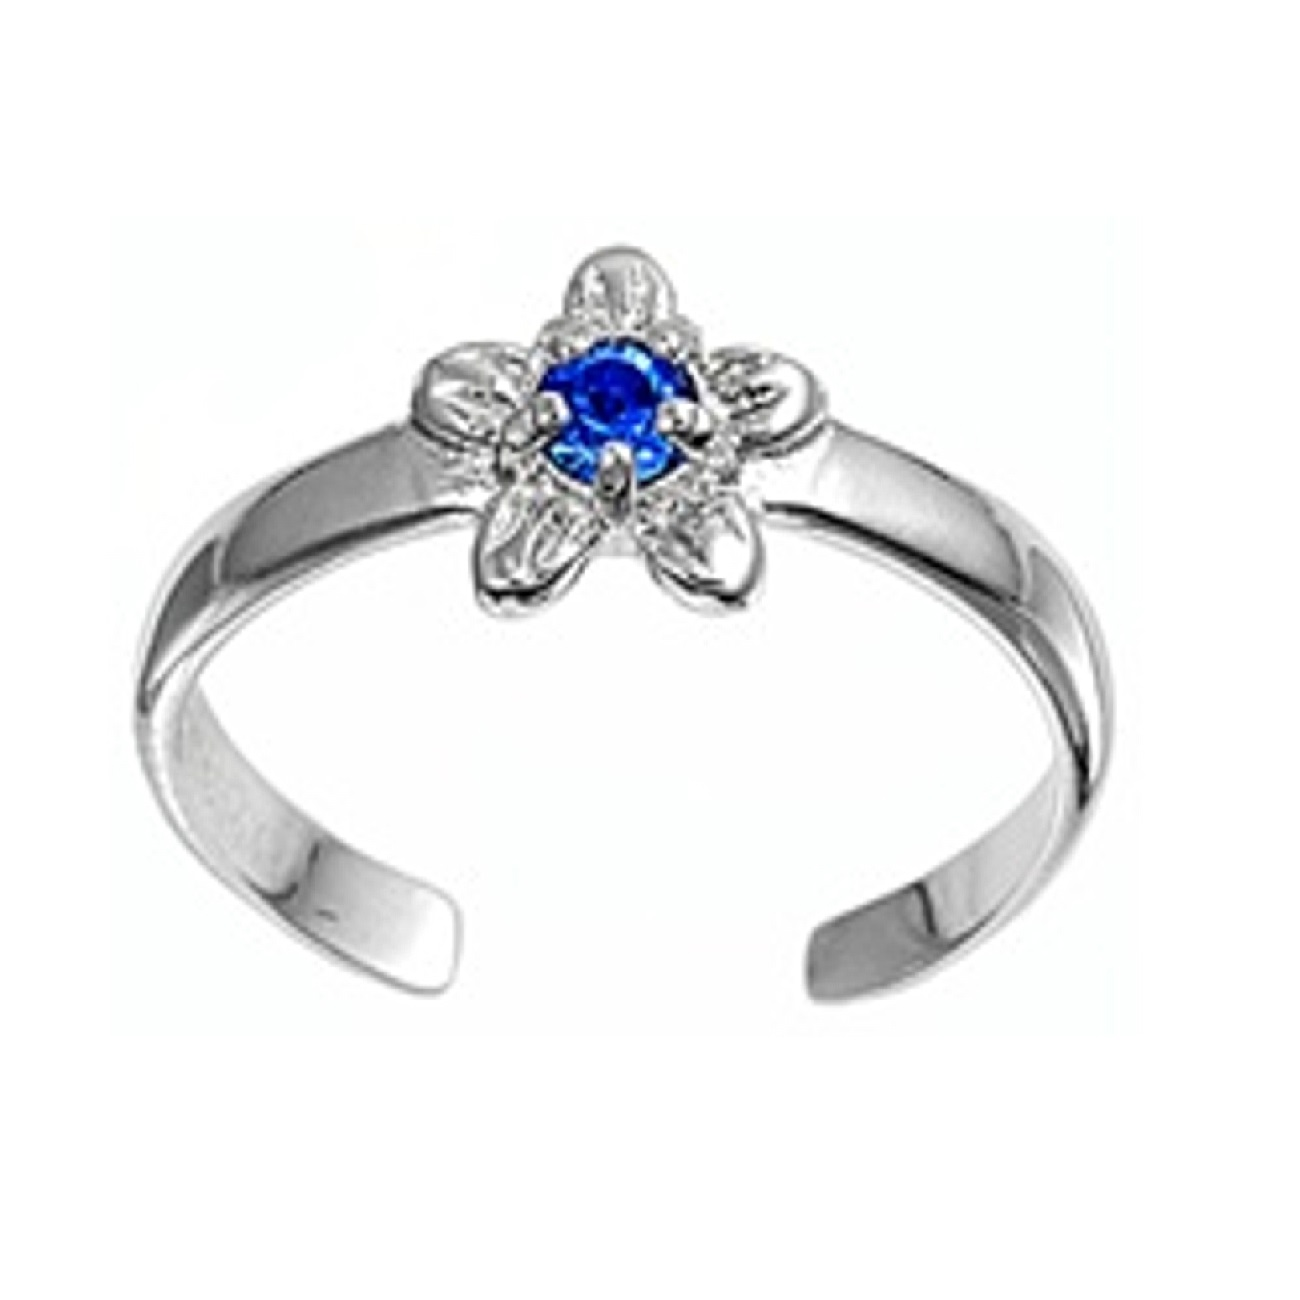 Blue Cubic Zirconia Daisy Flower Adjustable Toe Ring